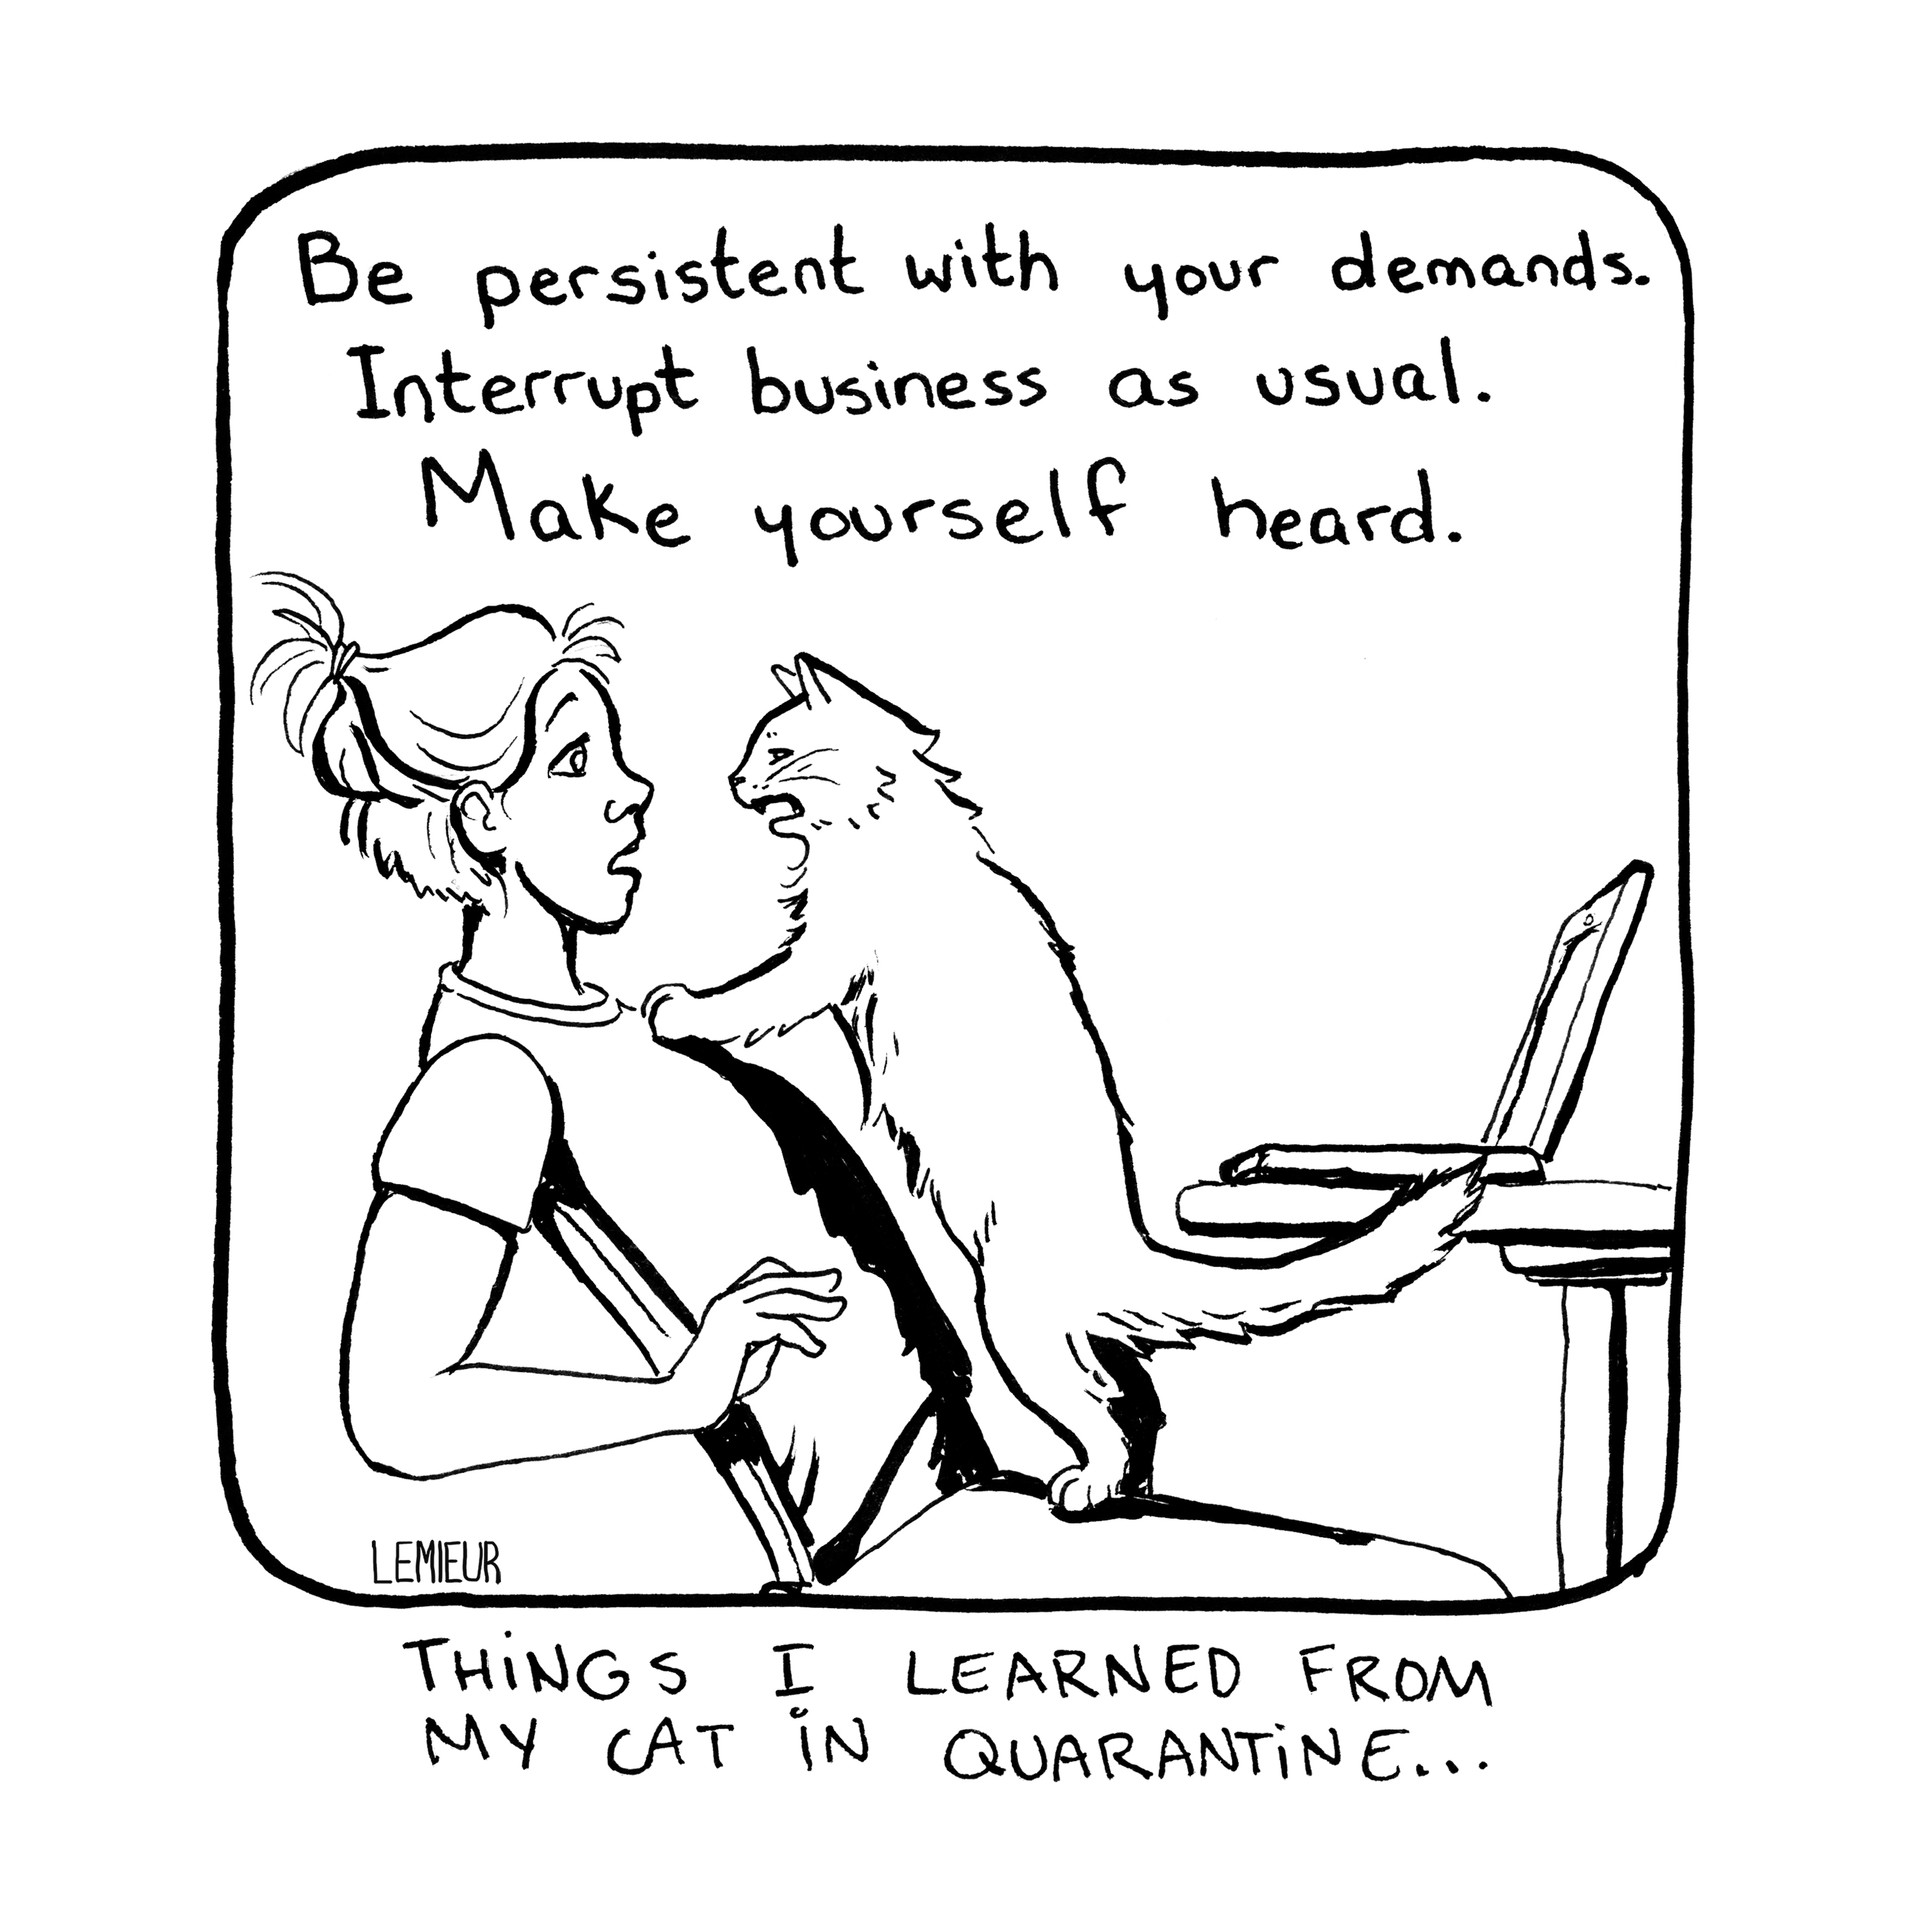 Excerpt from: Things I Learned From My Cat in Quarantine